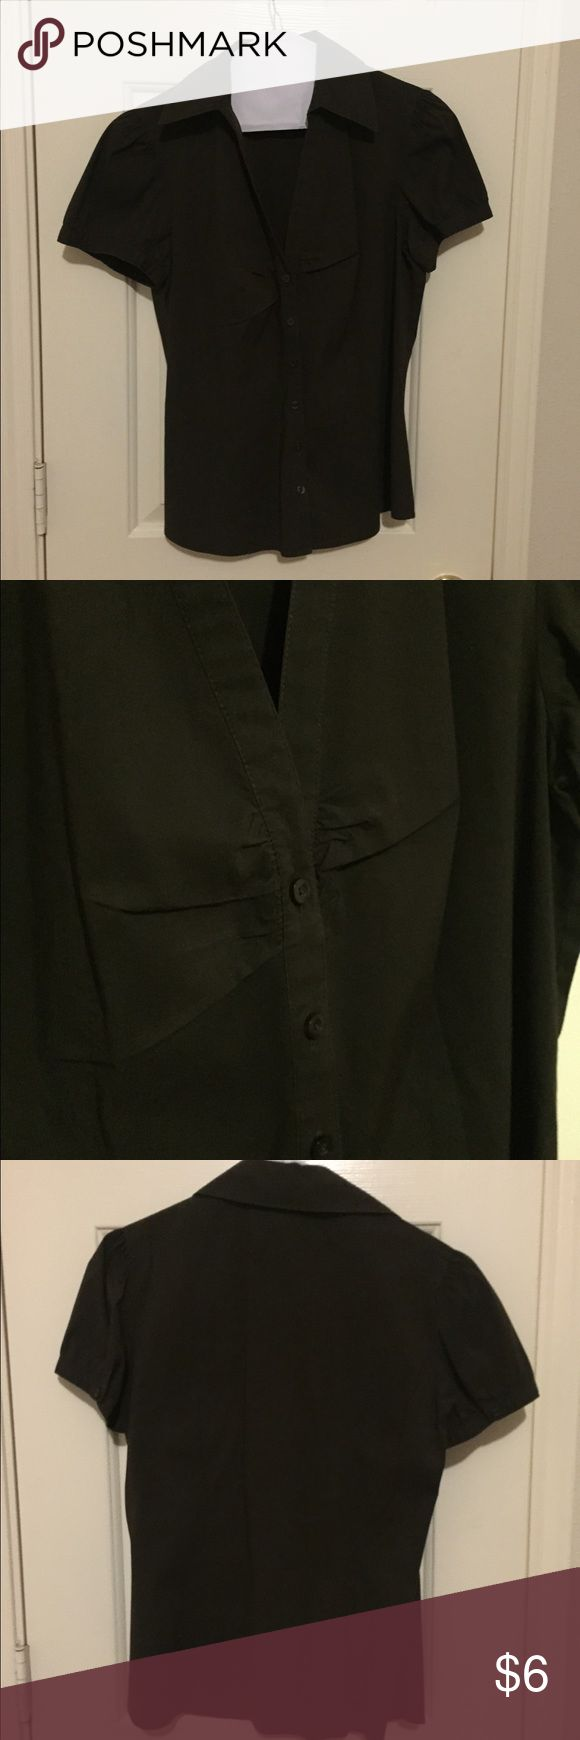 Ann Taylor Loft Dark Brown Button Up Dark brown in color, best light in first pic showing best color.  Button up front, dressy sleeve, gathering right at bust for flattering fit.  Also has darts in front and back for slimming, flattering, very tailored look!  Cute top! Size Small. 60% cotton, 35% polyester, 5% spandex for a stretchy fit! Ann Taylor Tops Button Down Shirts